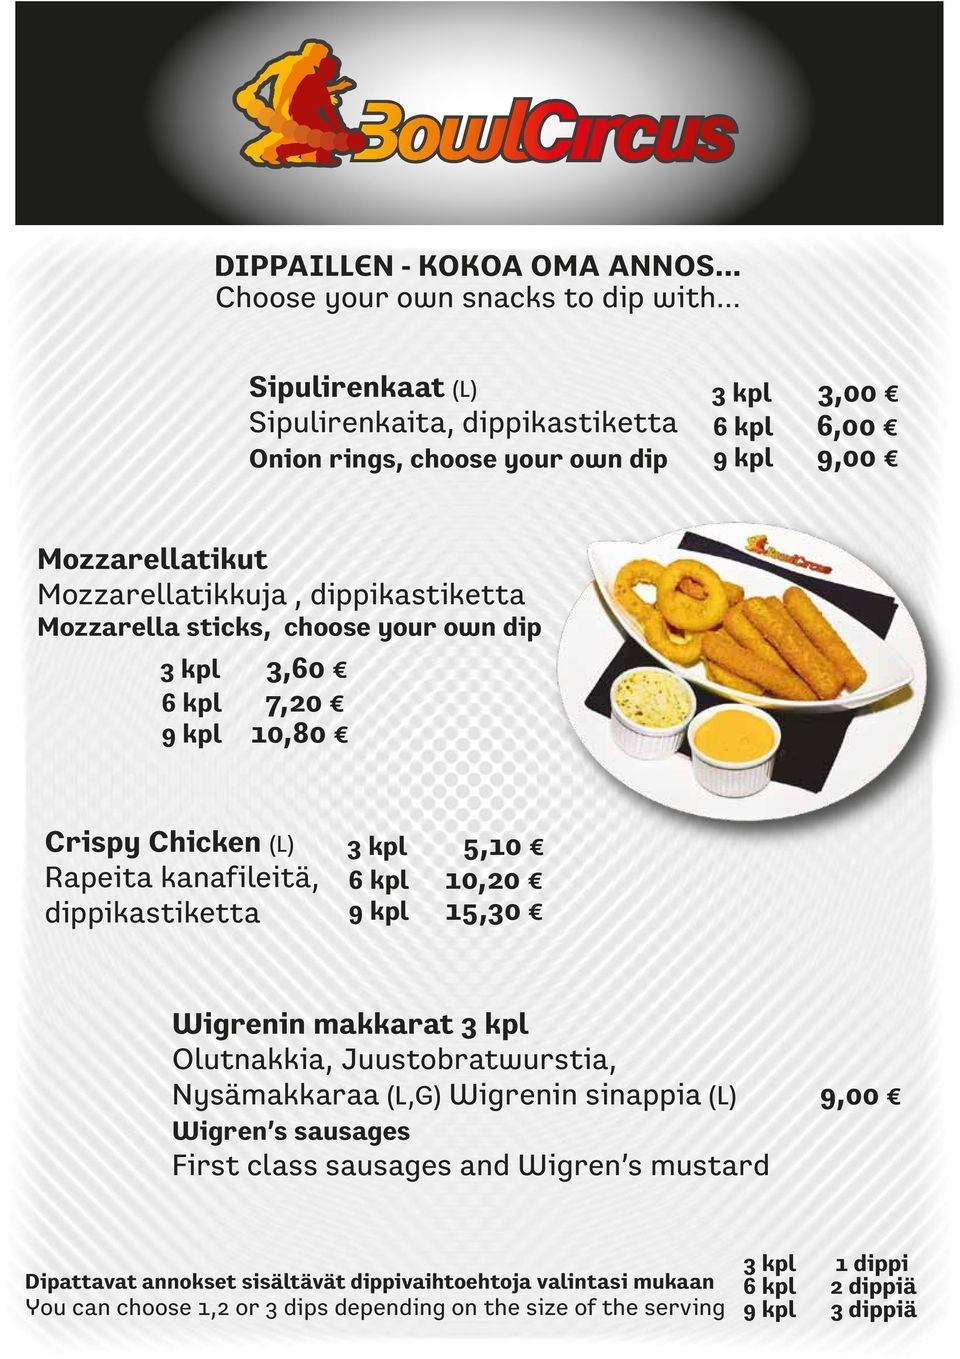 sticks, choose your own dip 3 kpl 3,60 6 kpl 7,20 9 kpl 10,80 Crispy Chicken (L) Rapeita kanafileitä, dippikastiketta 3 kpl 5,10 6 kpl 10,20 9 kpl 15,30 Wigrenin makkarat 3 kpl